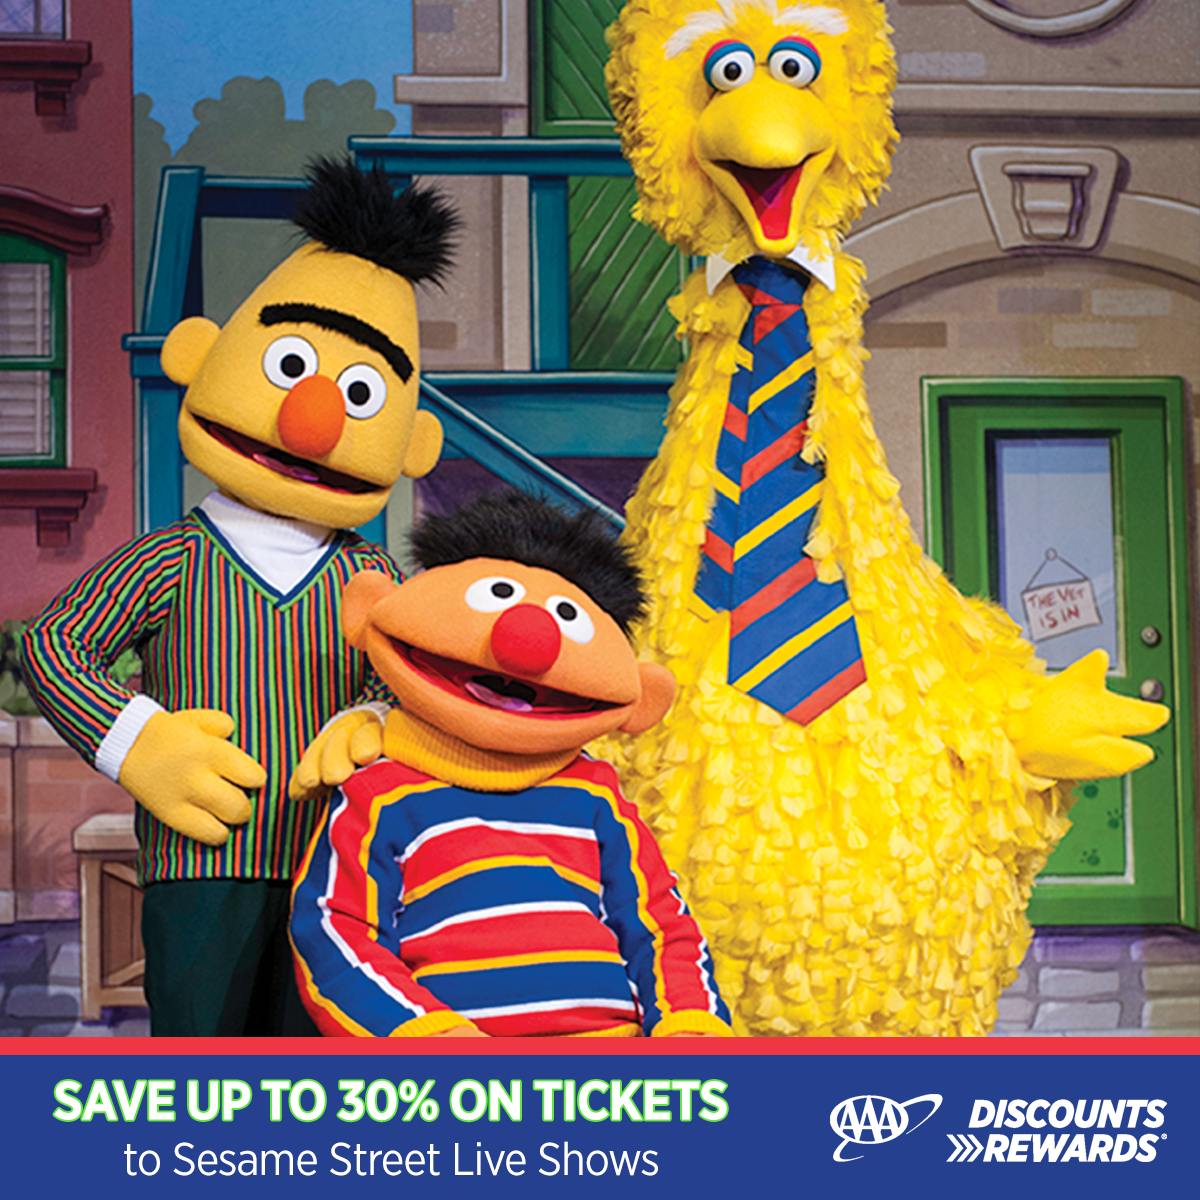 Use Your Aaa Discounts To Save Up To 30 On Tickets To